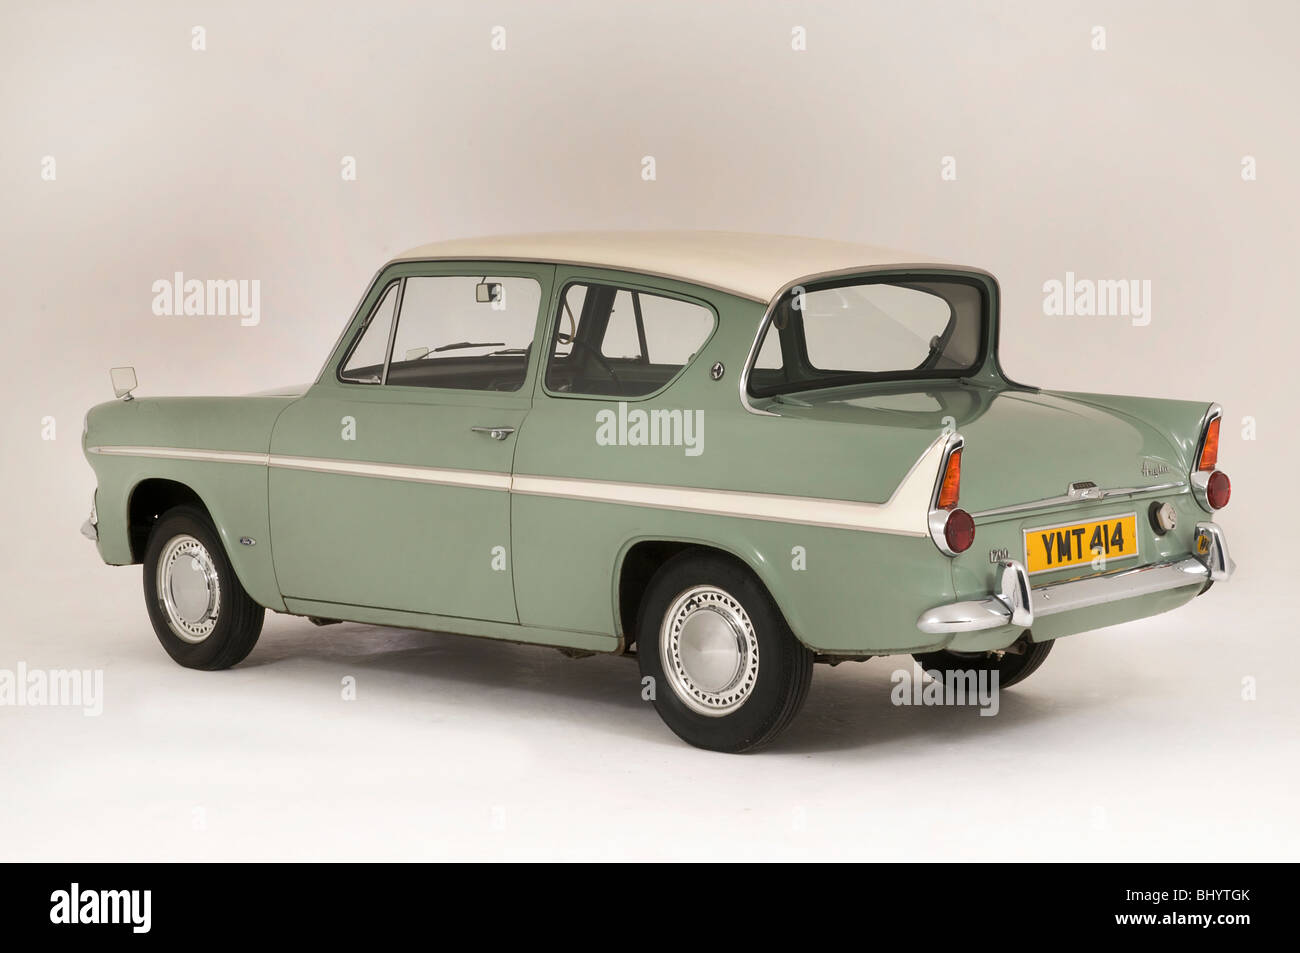 1966 Ford Anglia Super 1200 Stock Photo, Royalty Free Image: 28271507 - Alamy